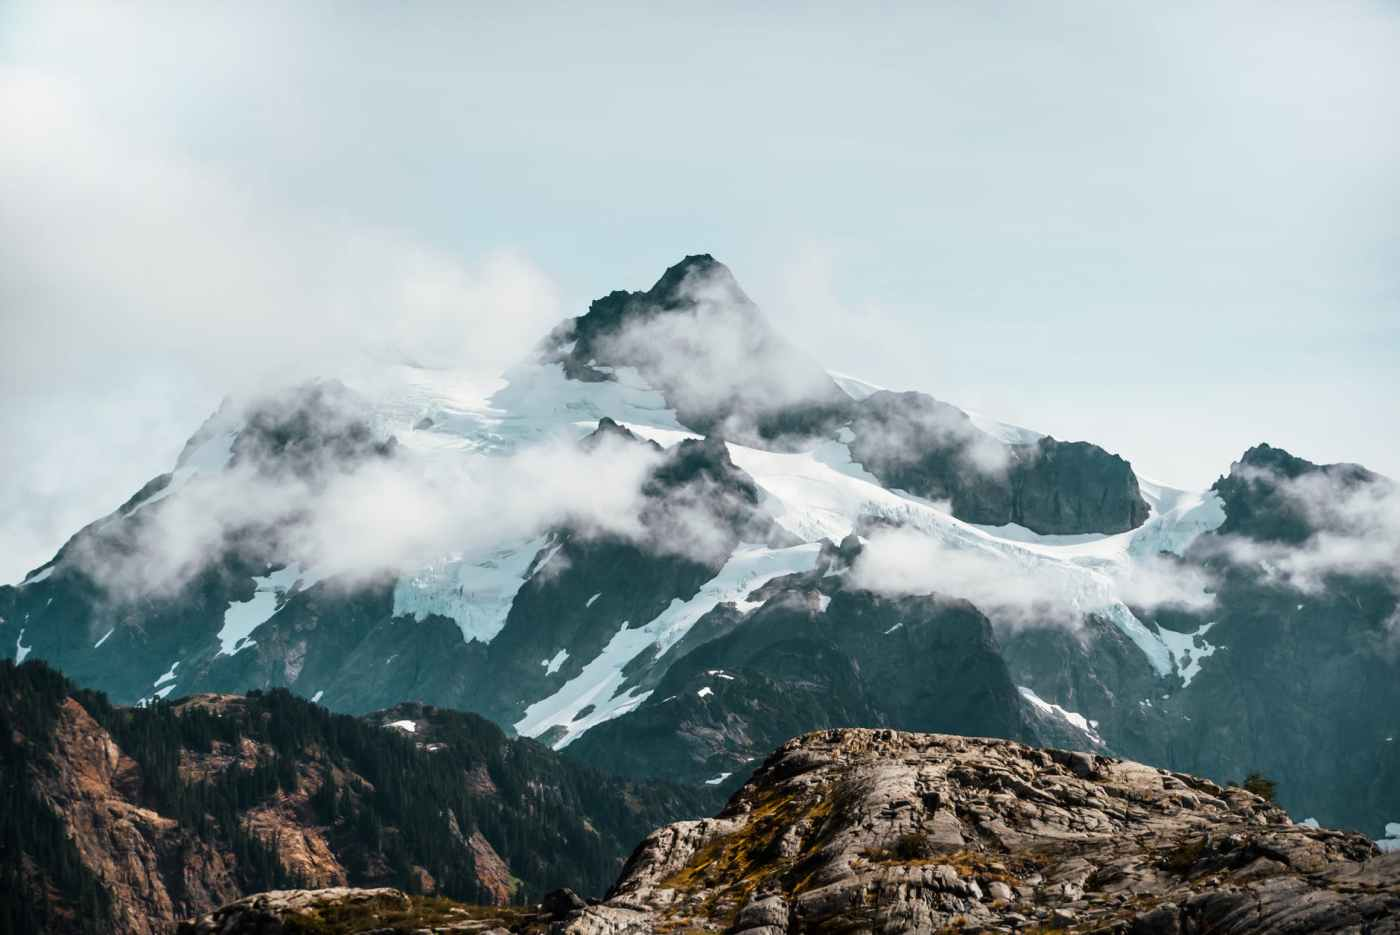 snowy mountain ridge against in clouds